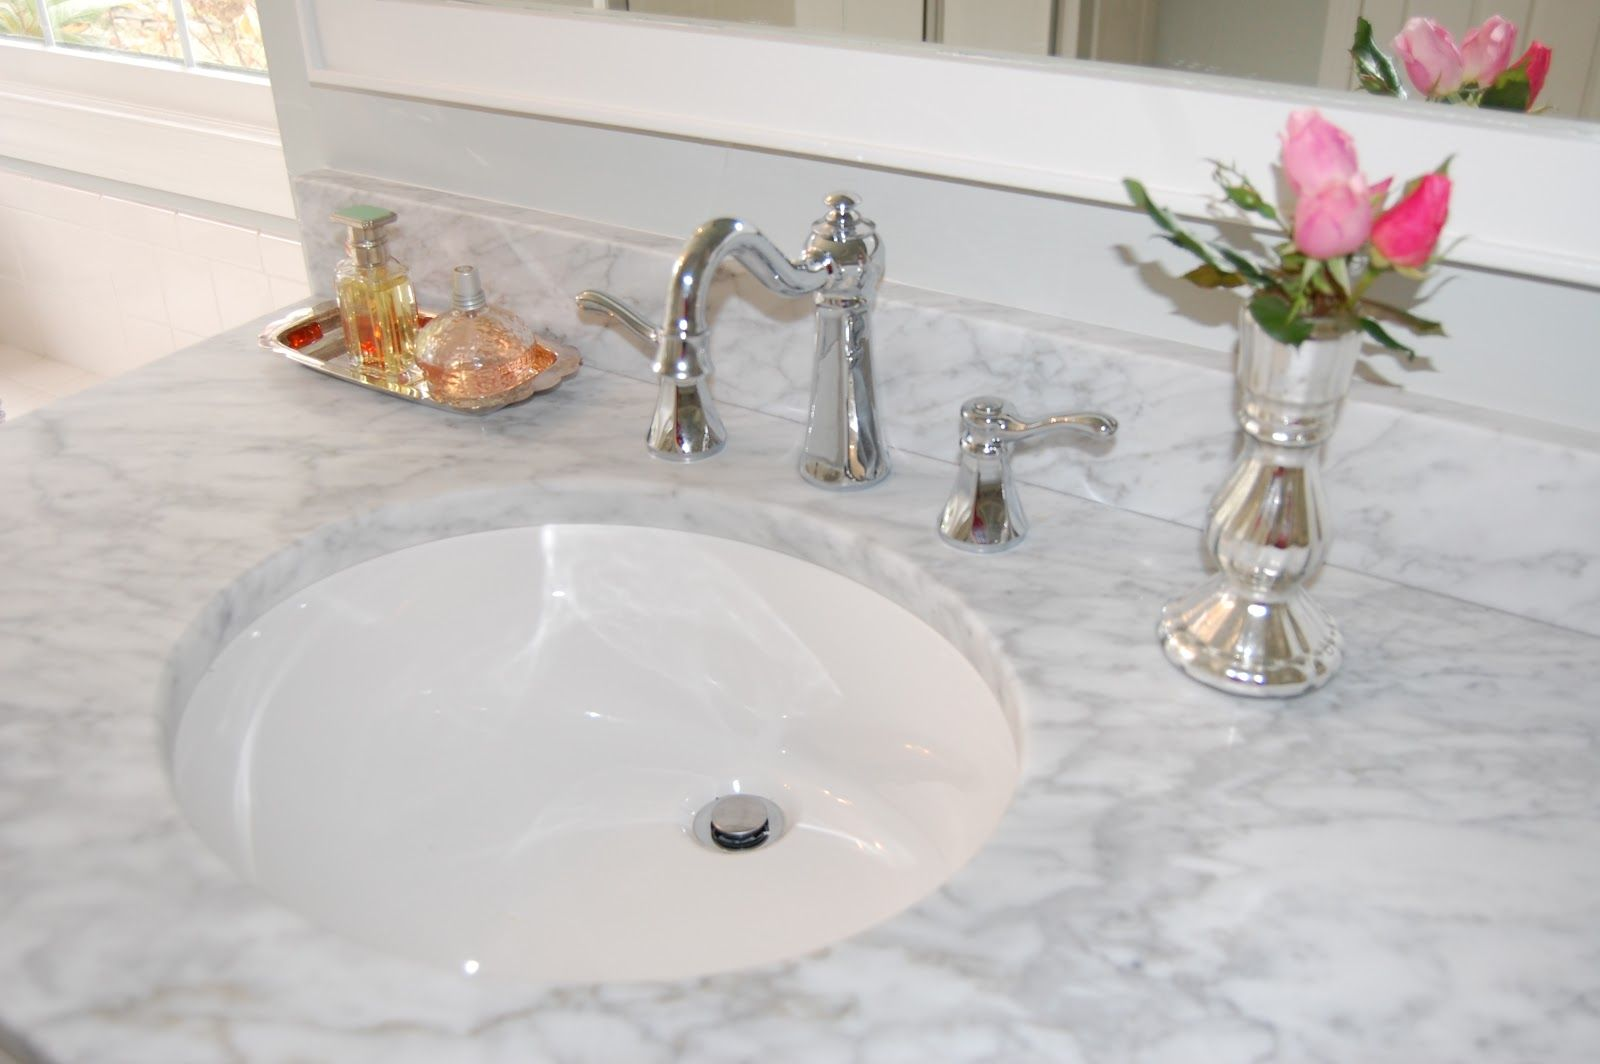 Bed Bath Cultured Marble Vanity Countertop And Undermount Sink